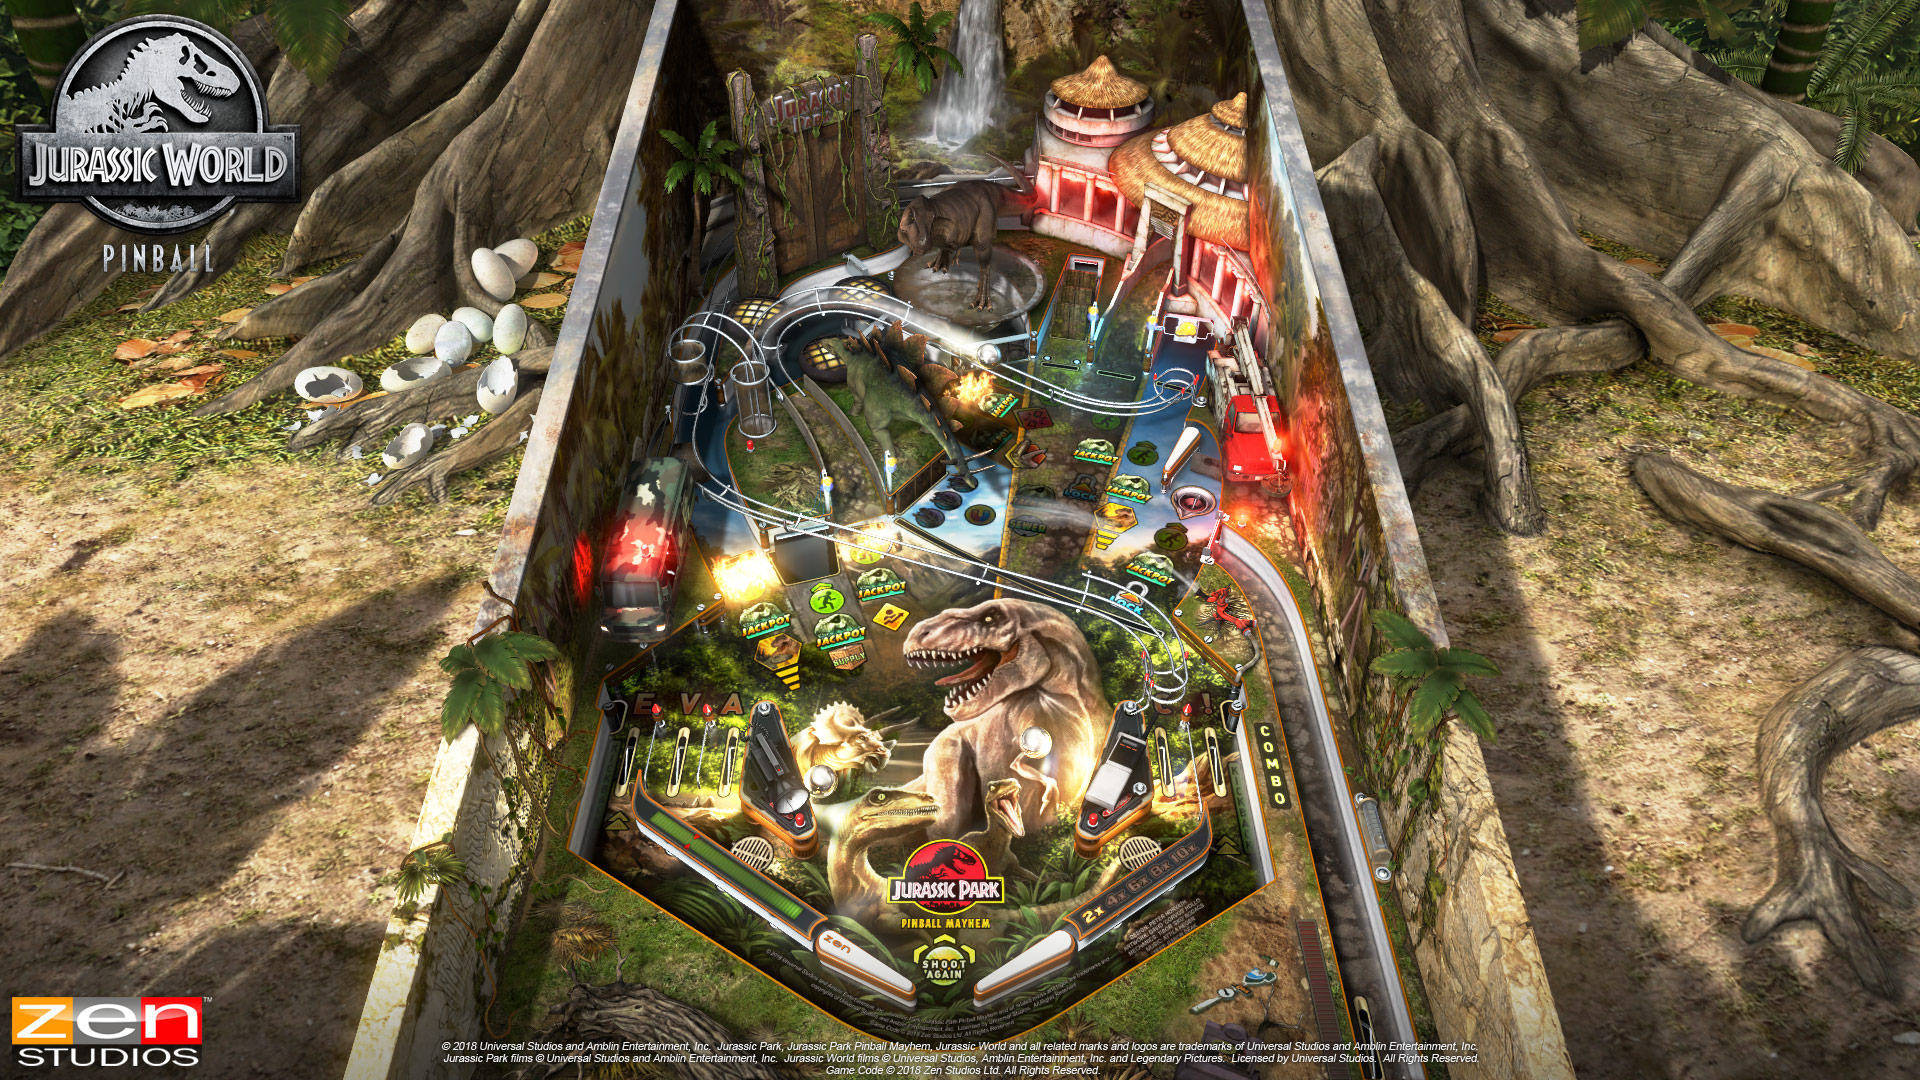 kitchen funnel small table ideas zen studios welcomes pinball players to jurassic world ...